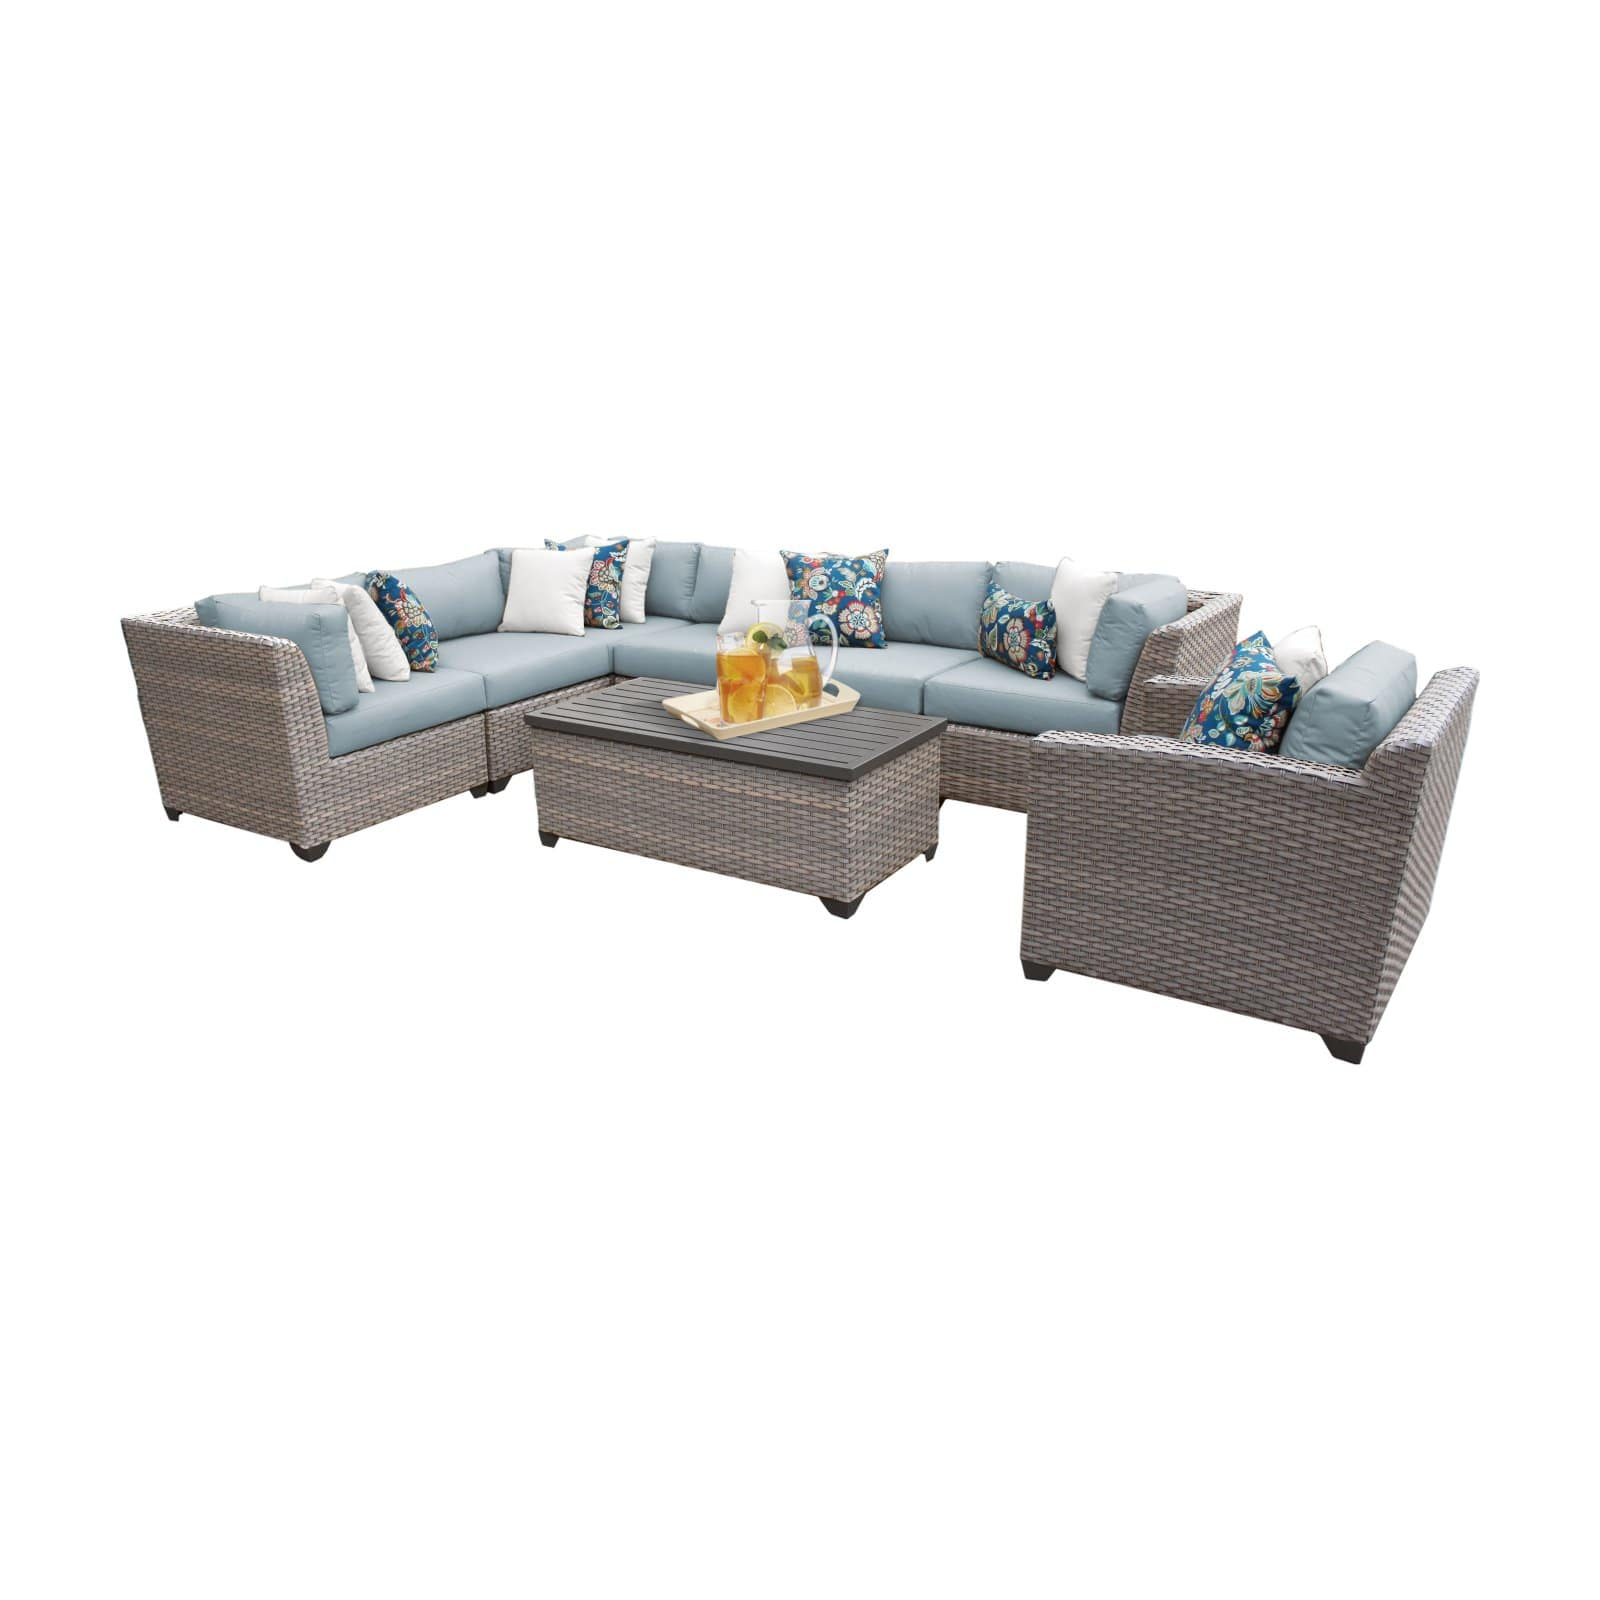 tk classics florence wicker 8 piece patio conversation set with club chair and 2 sets of cushion covers